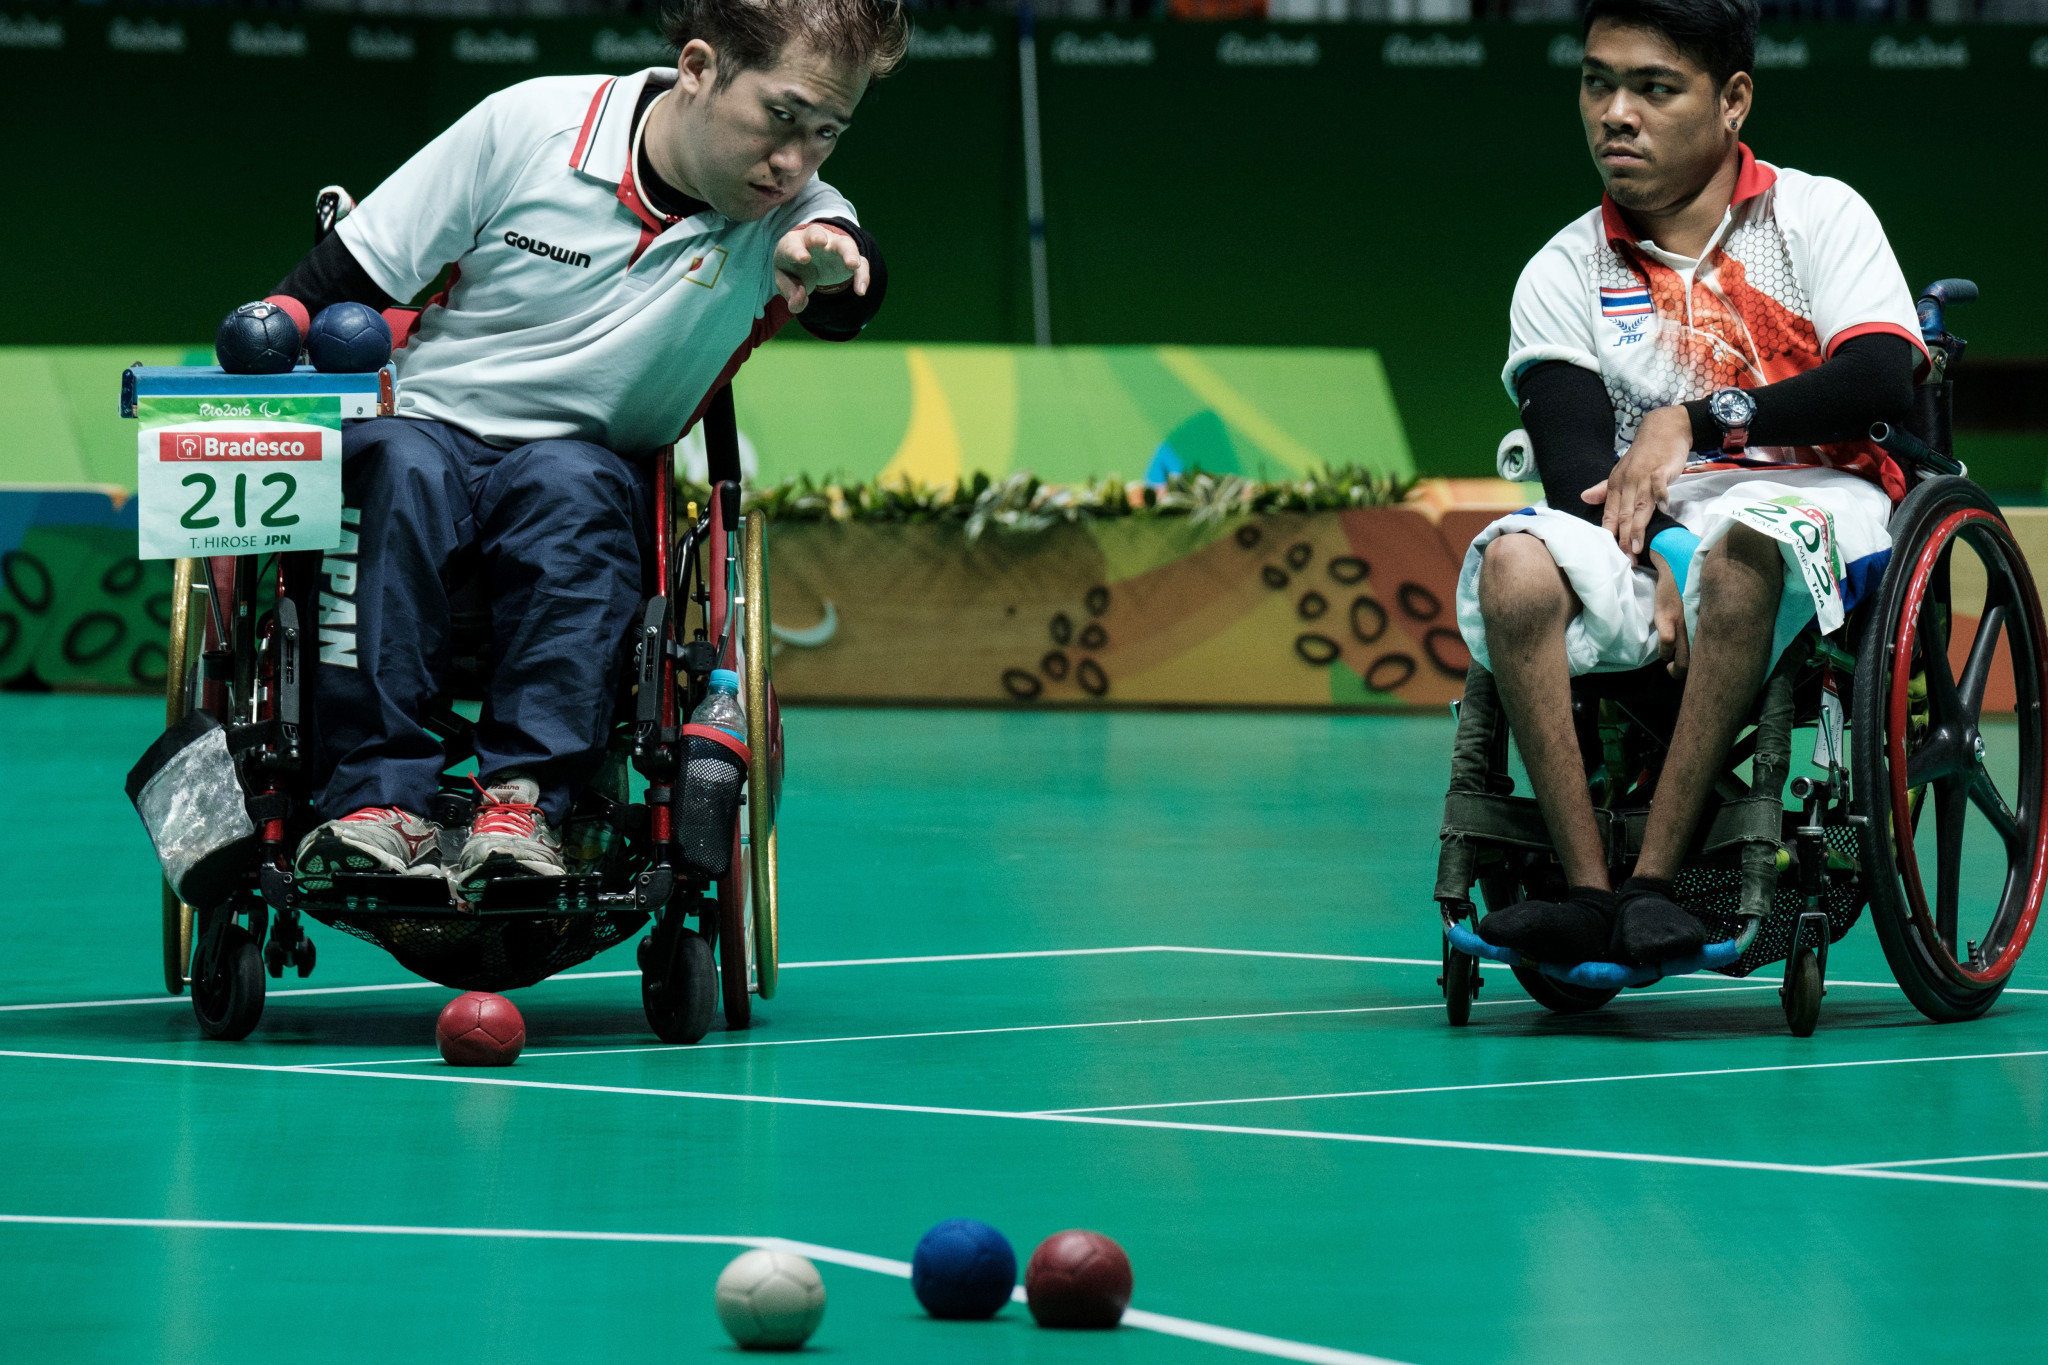 Boccia athletes will be required to provide a negative COVID-19 test ahead of arrival for competitions ©Getty Images